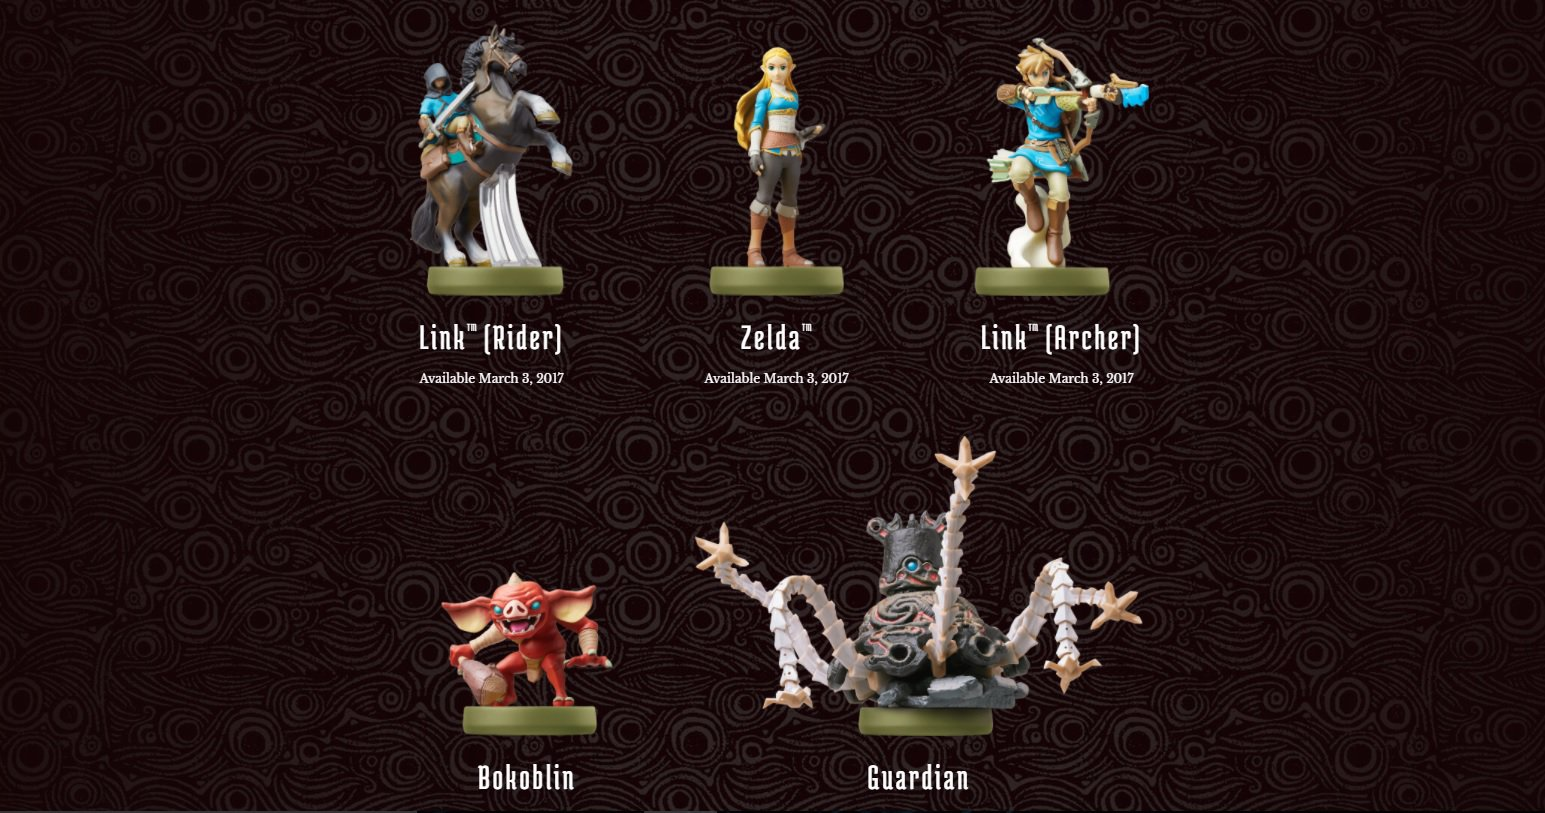 The Legend of Zelda Breath of the Wild amiibo